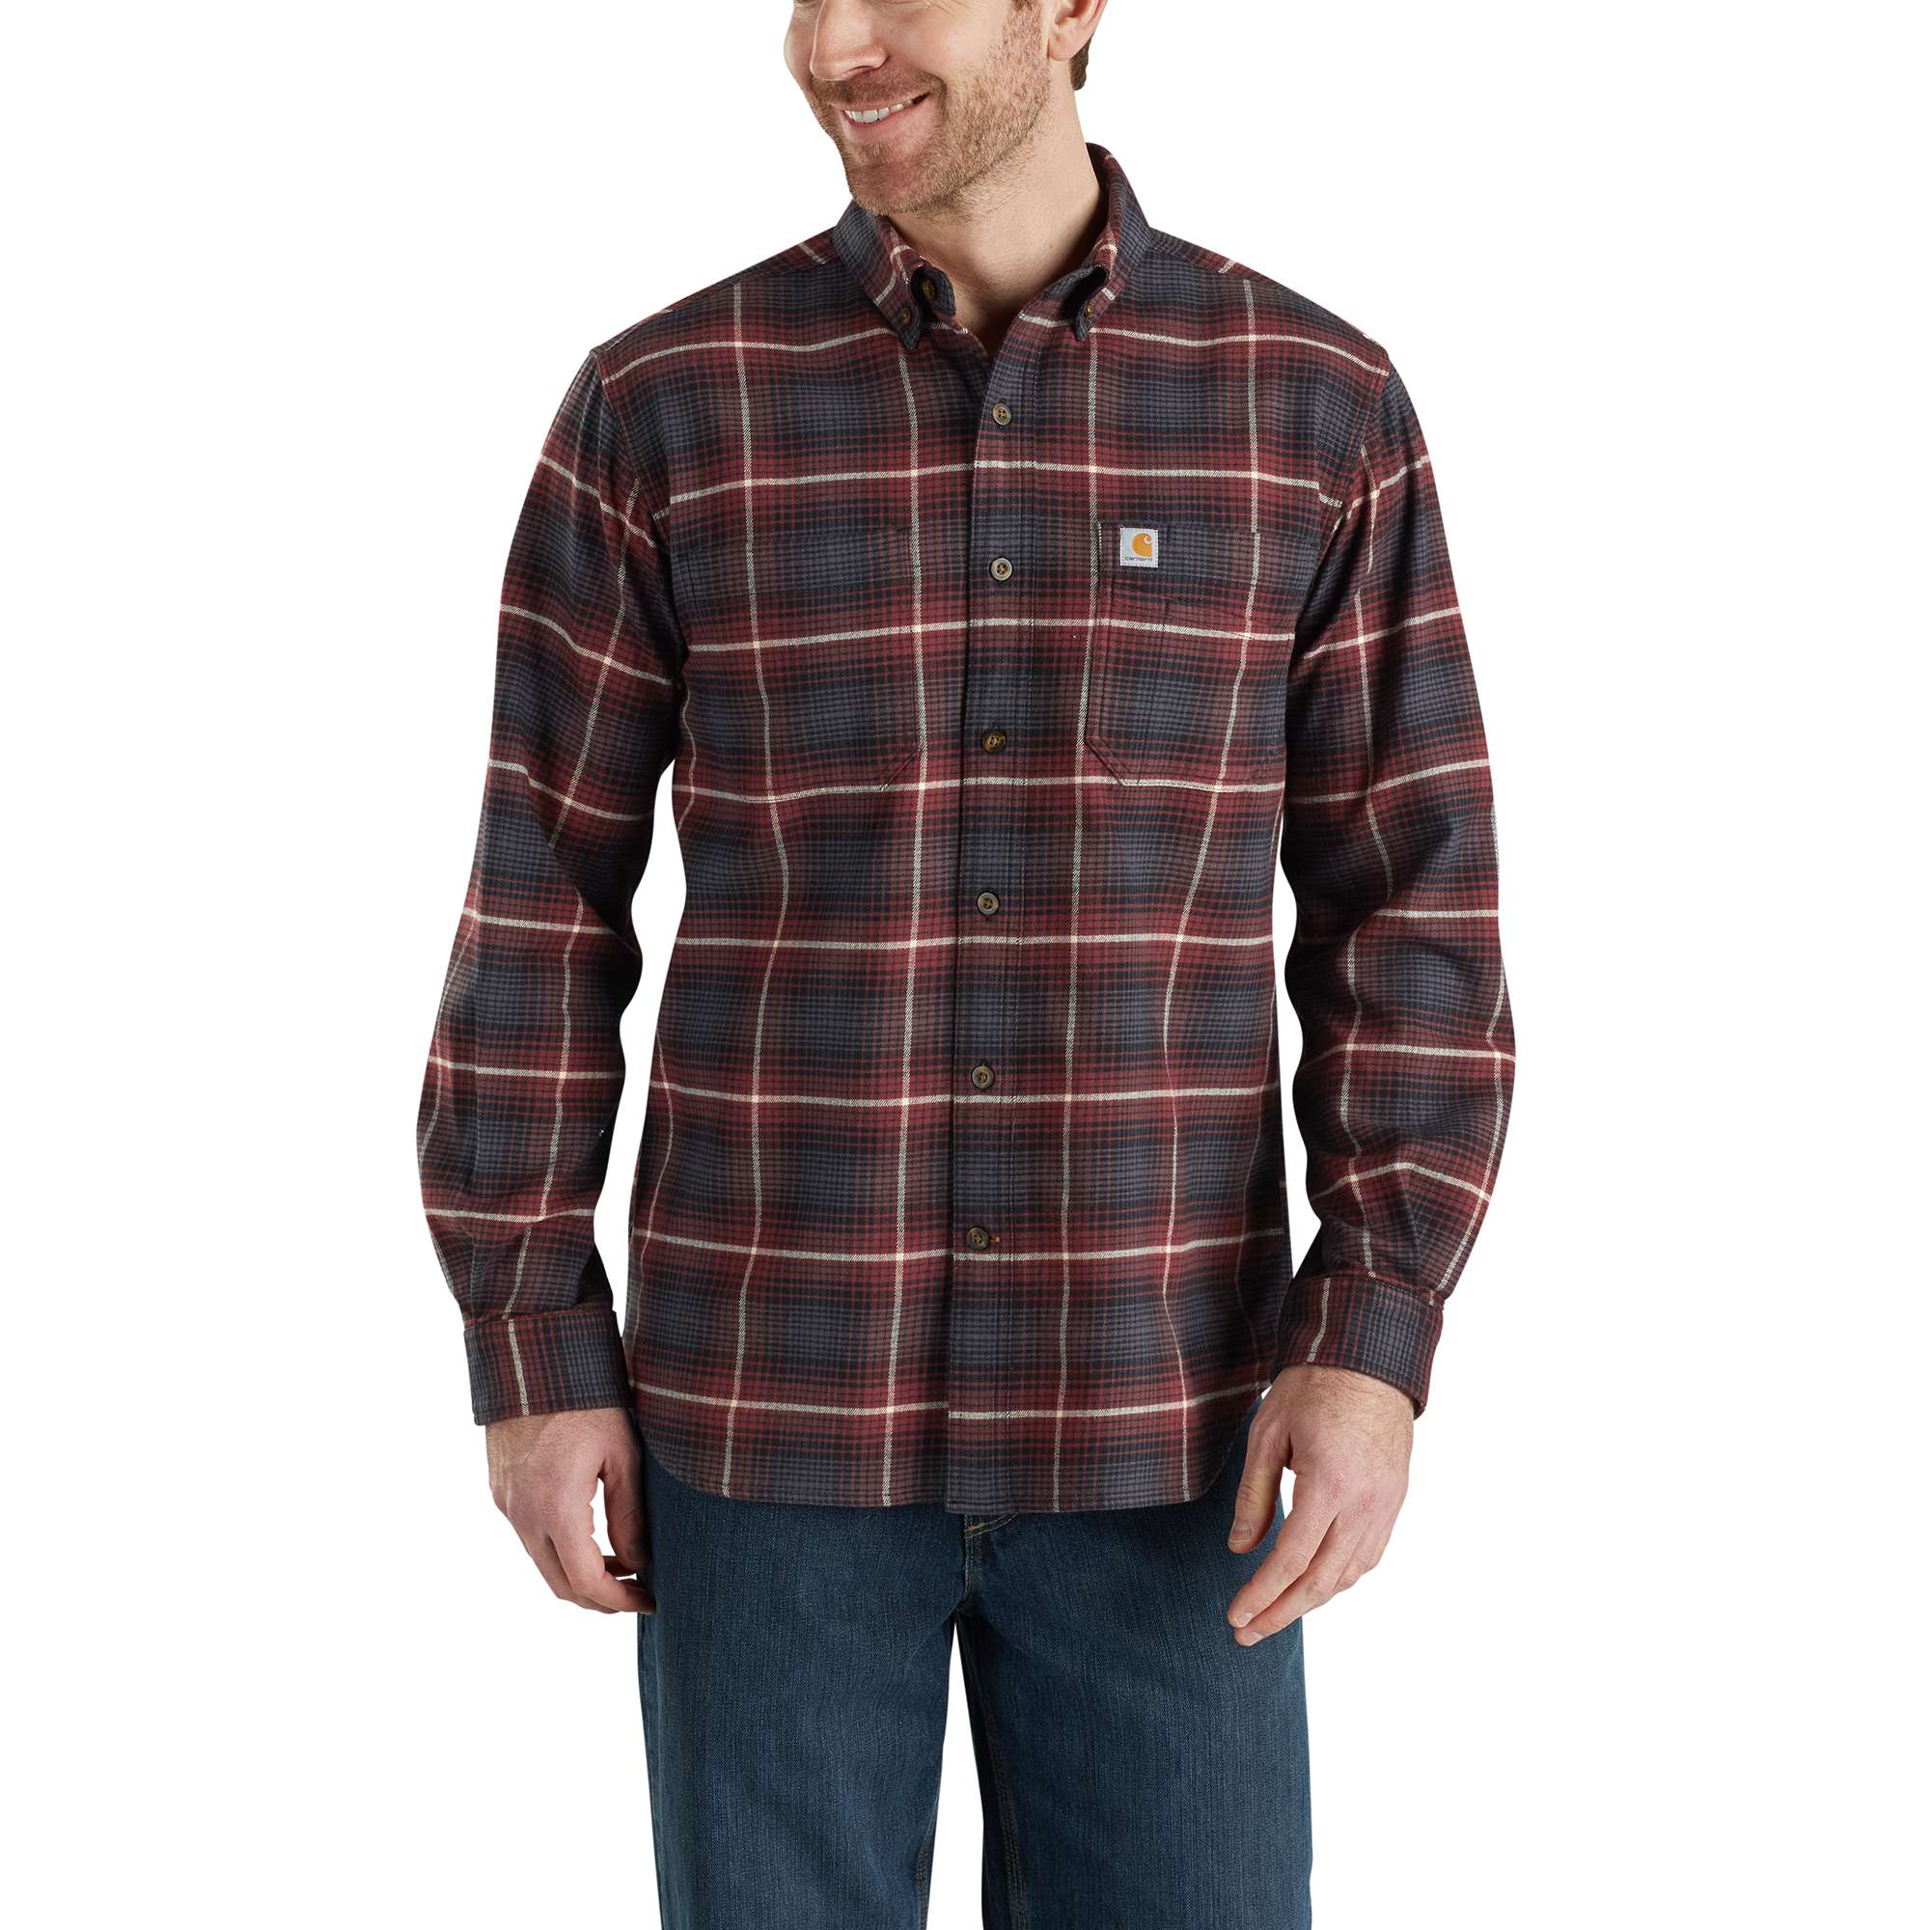 Men's Rugged Flex¨ Hamilton Plaid Long Sleeve Shirt, Brick, swatch